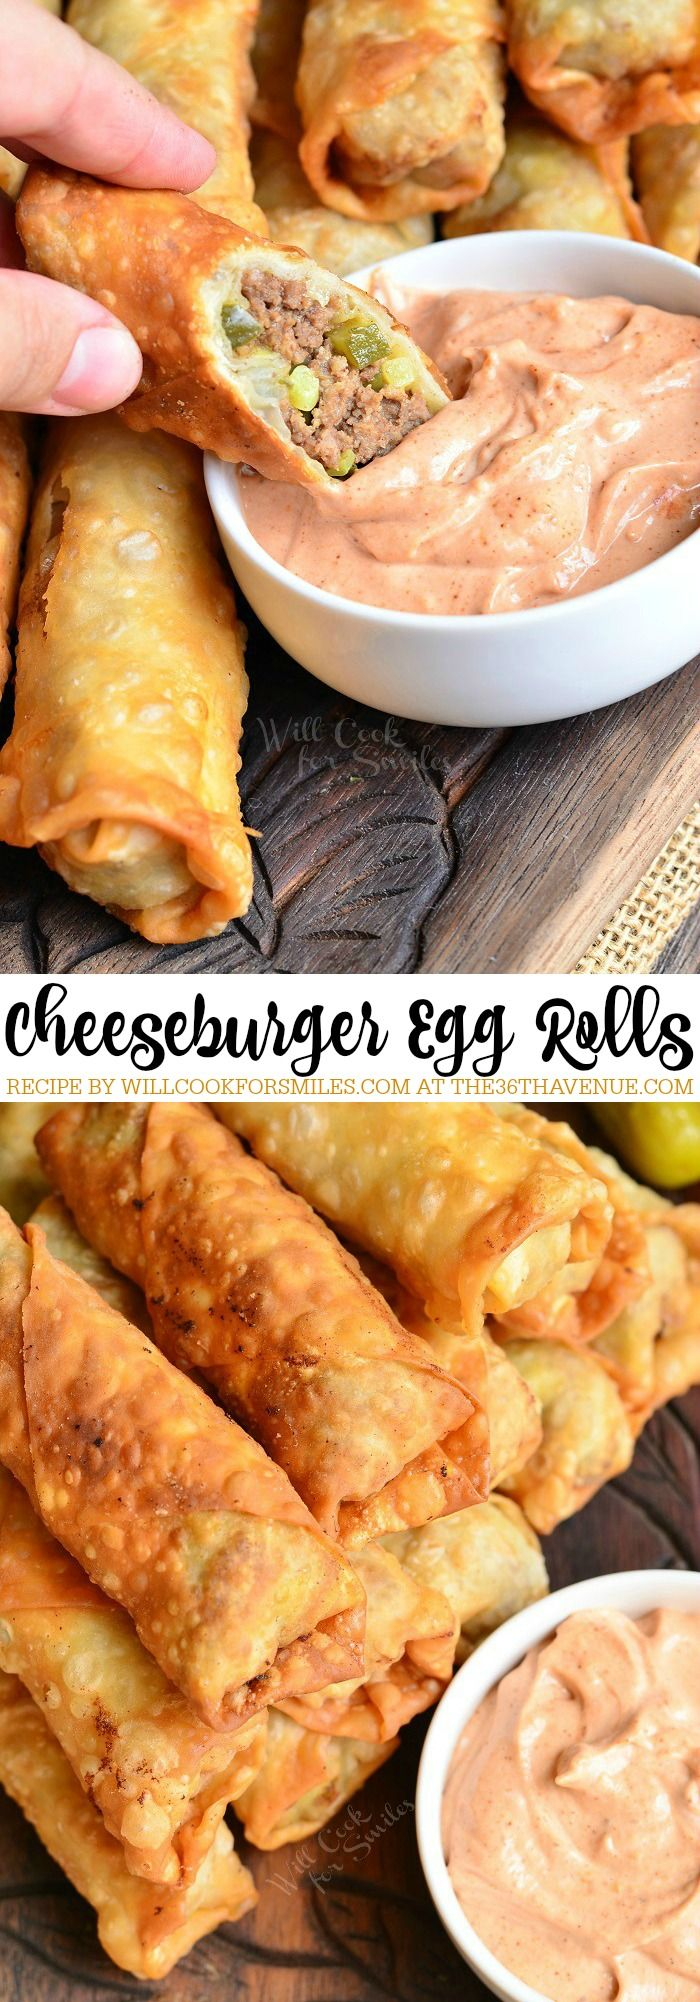 Easy Recipes - Cheeseburgers and Egg Rolls together are an AMAZING combination. These easy egg rolls are super easy to make and perfect for appetizers, snacks, or party food. PIN IT now and make it later! You are going to love this delicious quick recipe!::